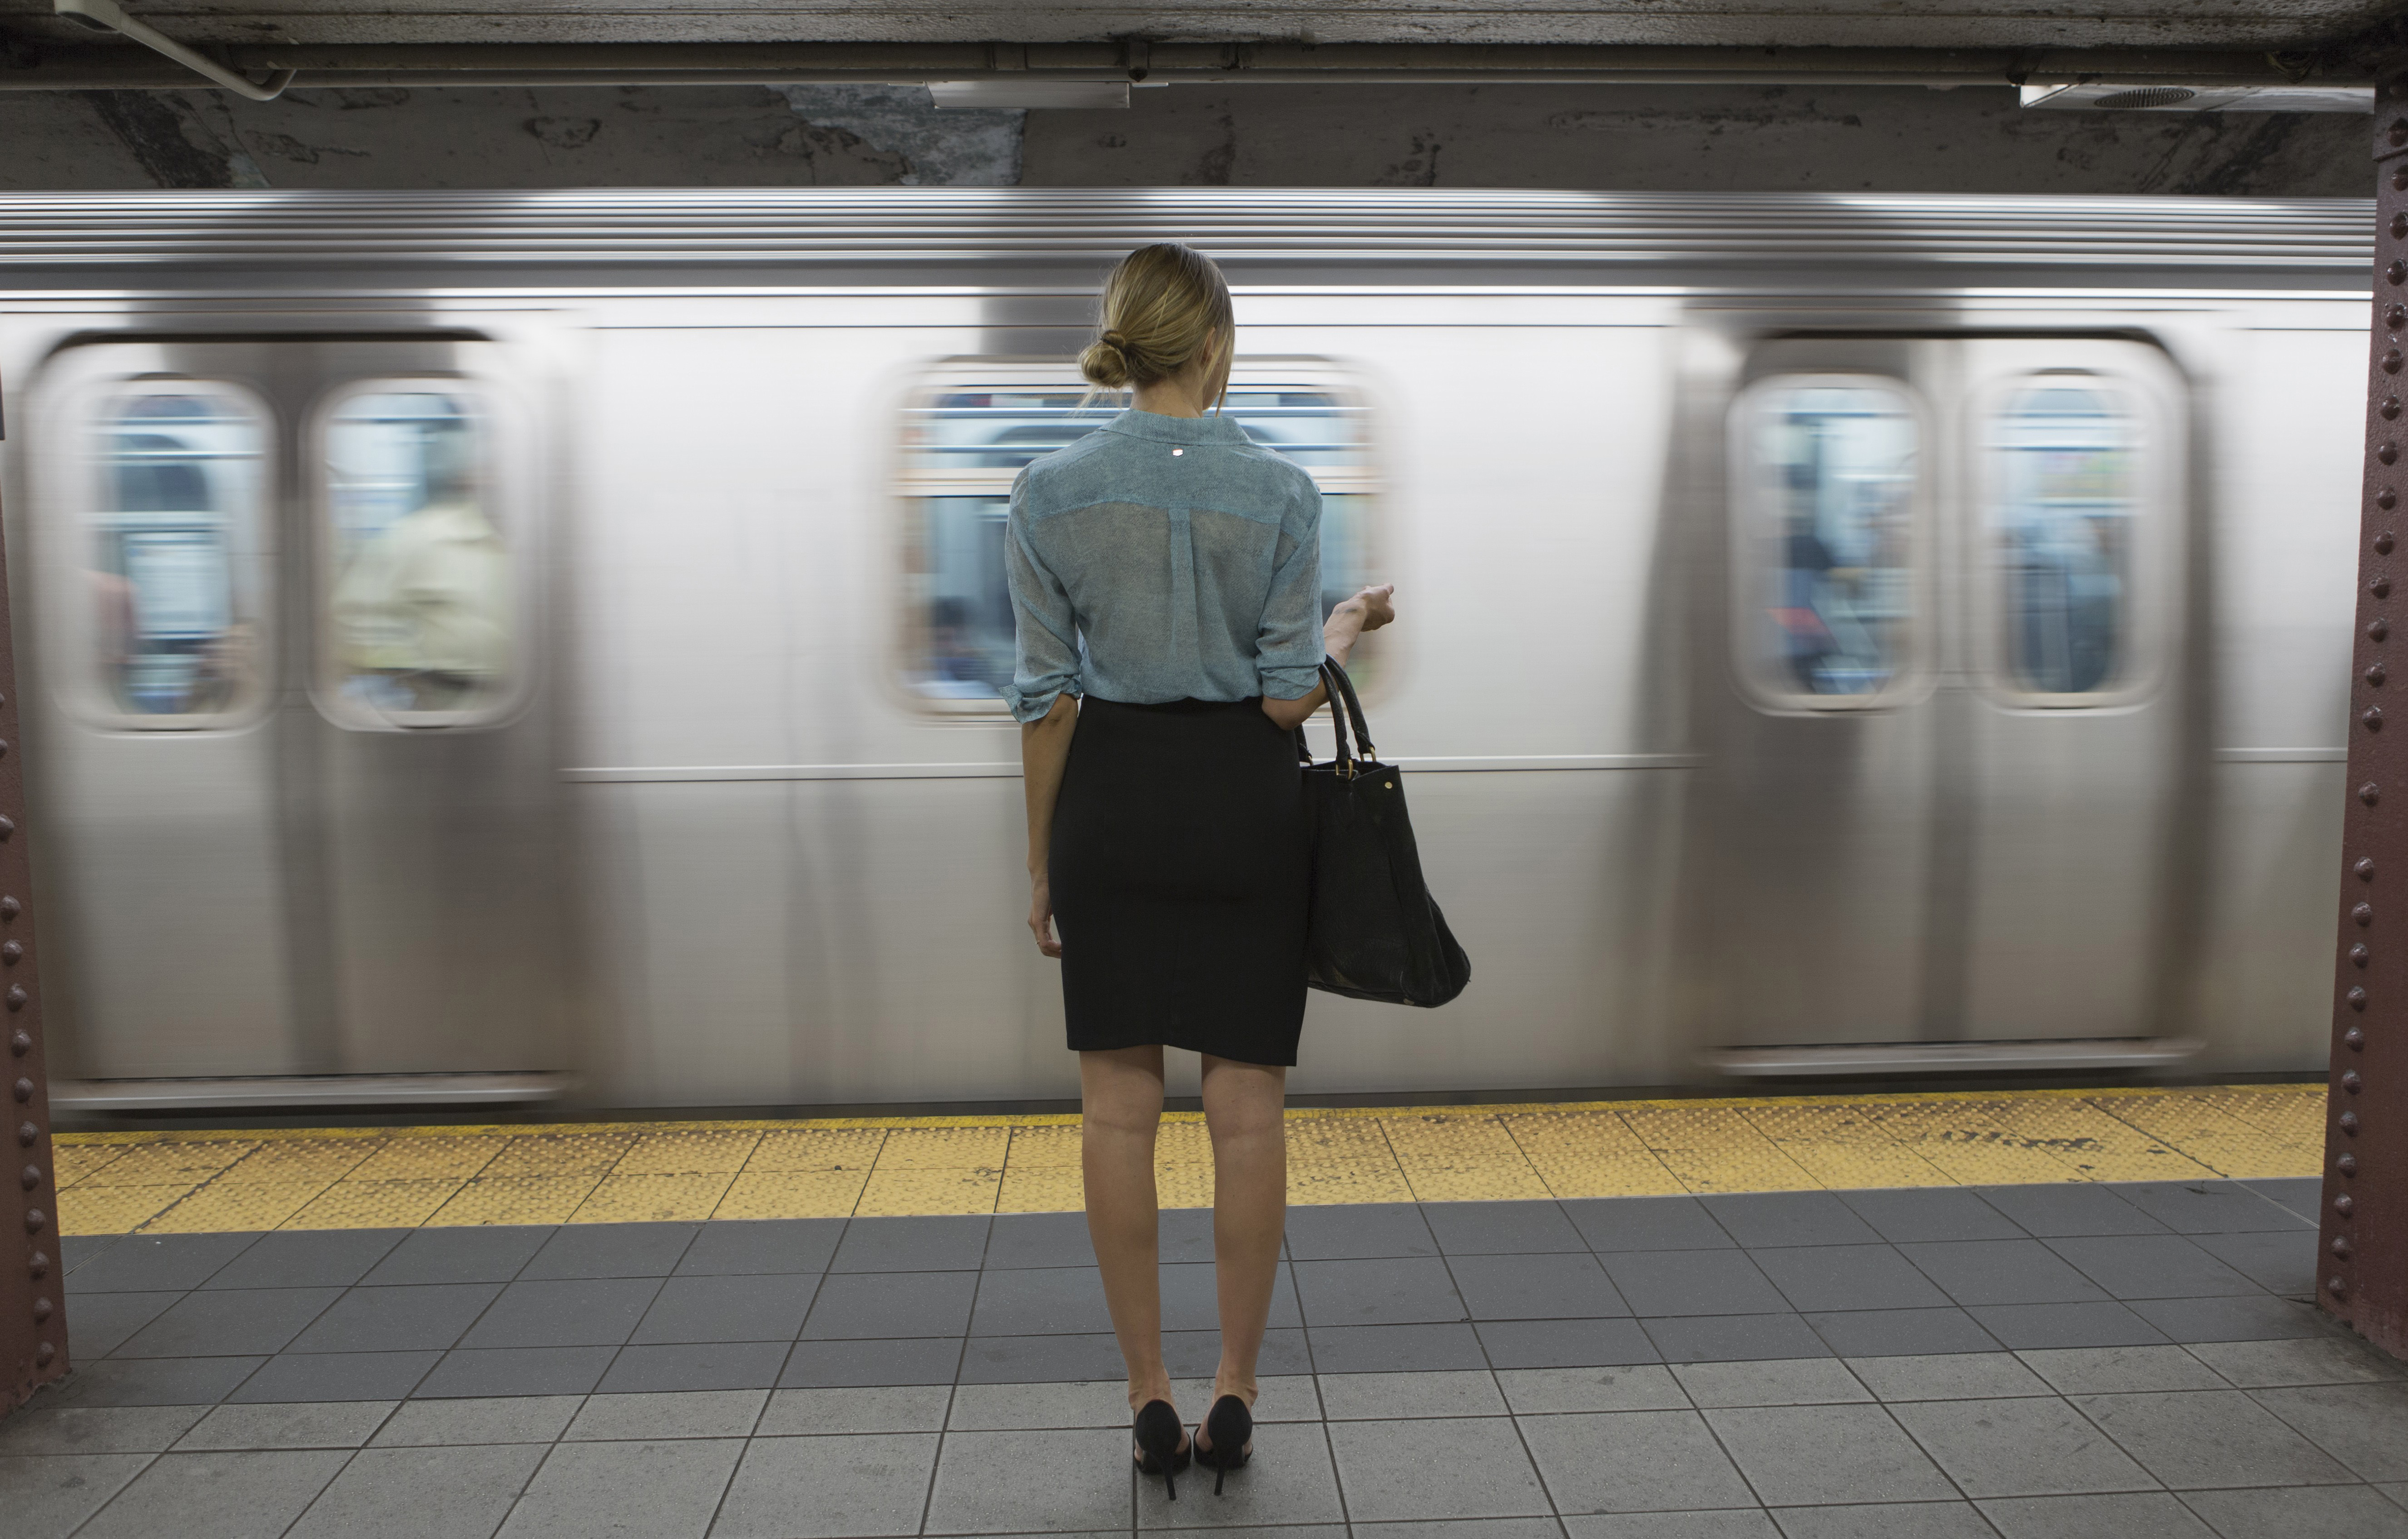 29 Jul 2014 --- Caucasian woman standing near passing subway in train station --- Image by © Blend Images/Corbis